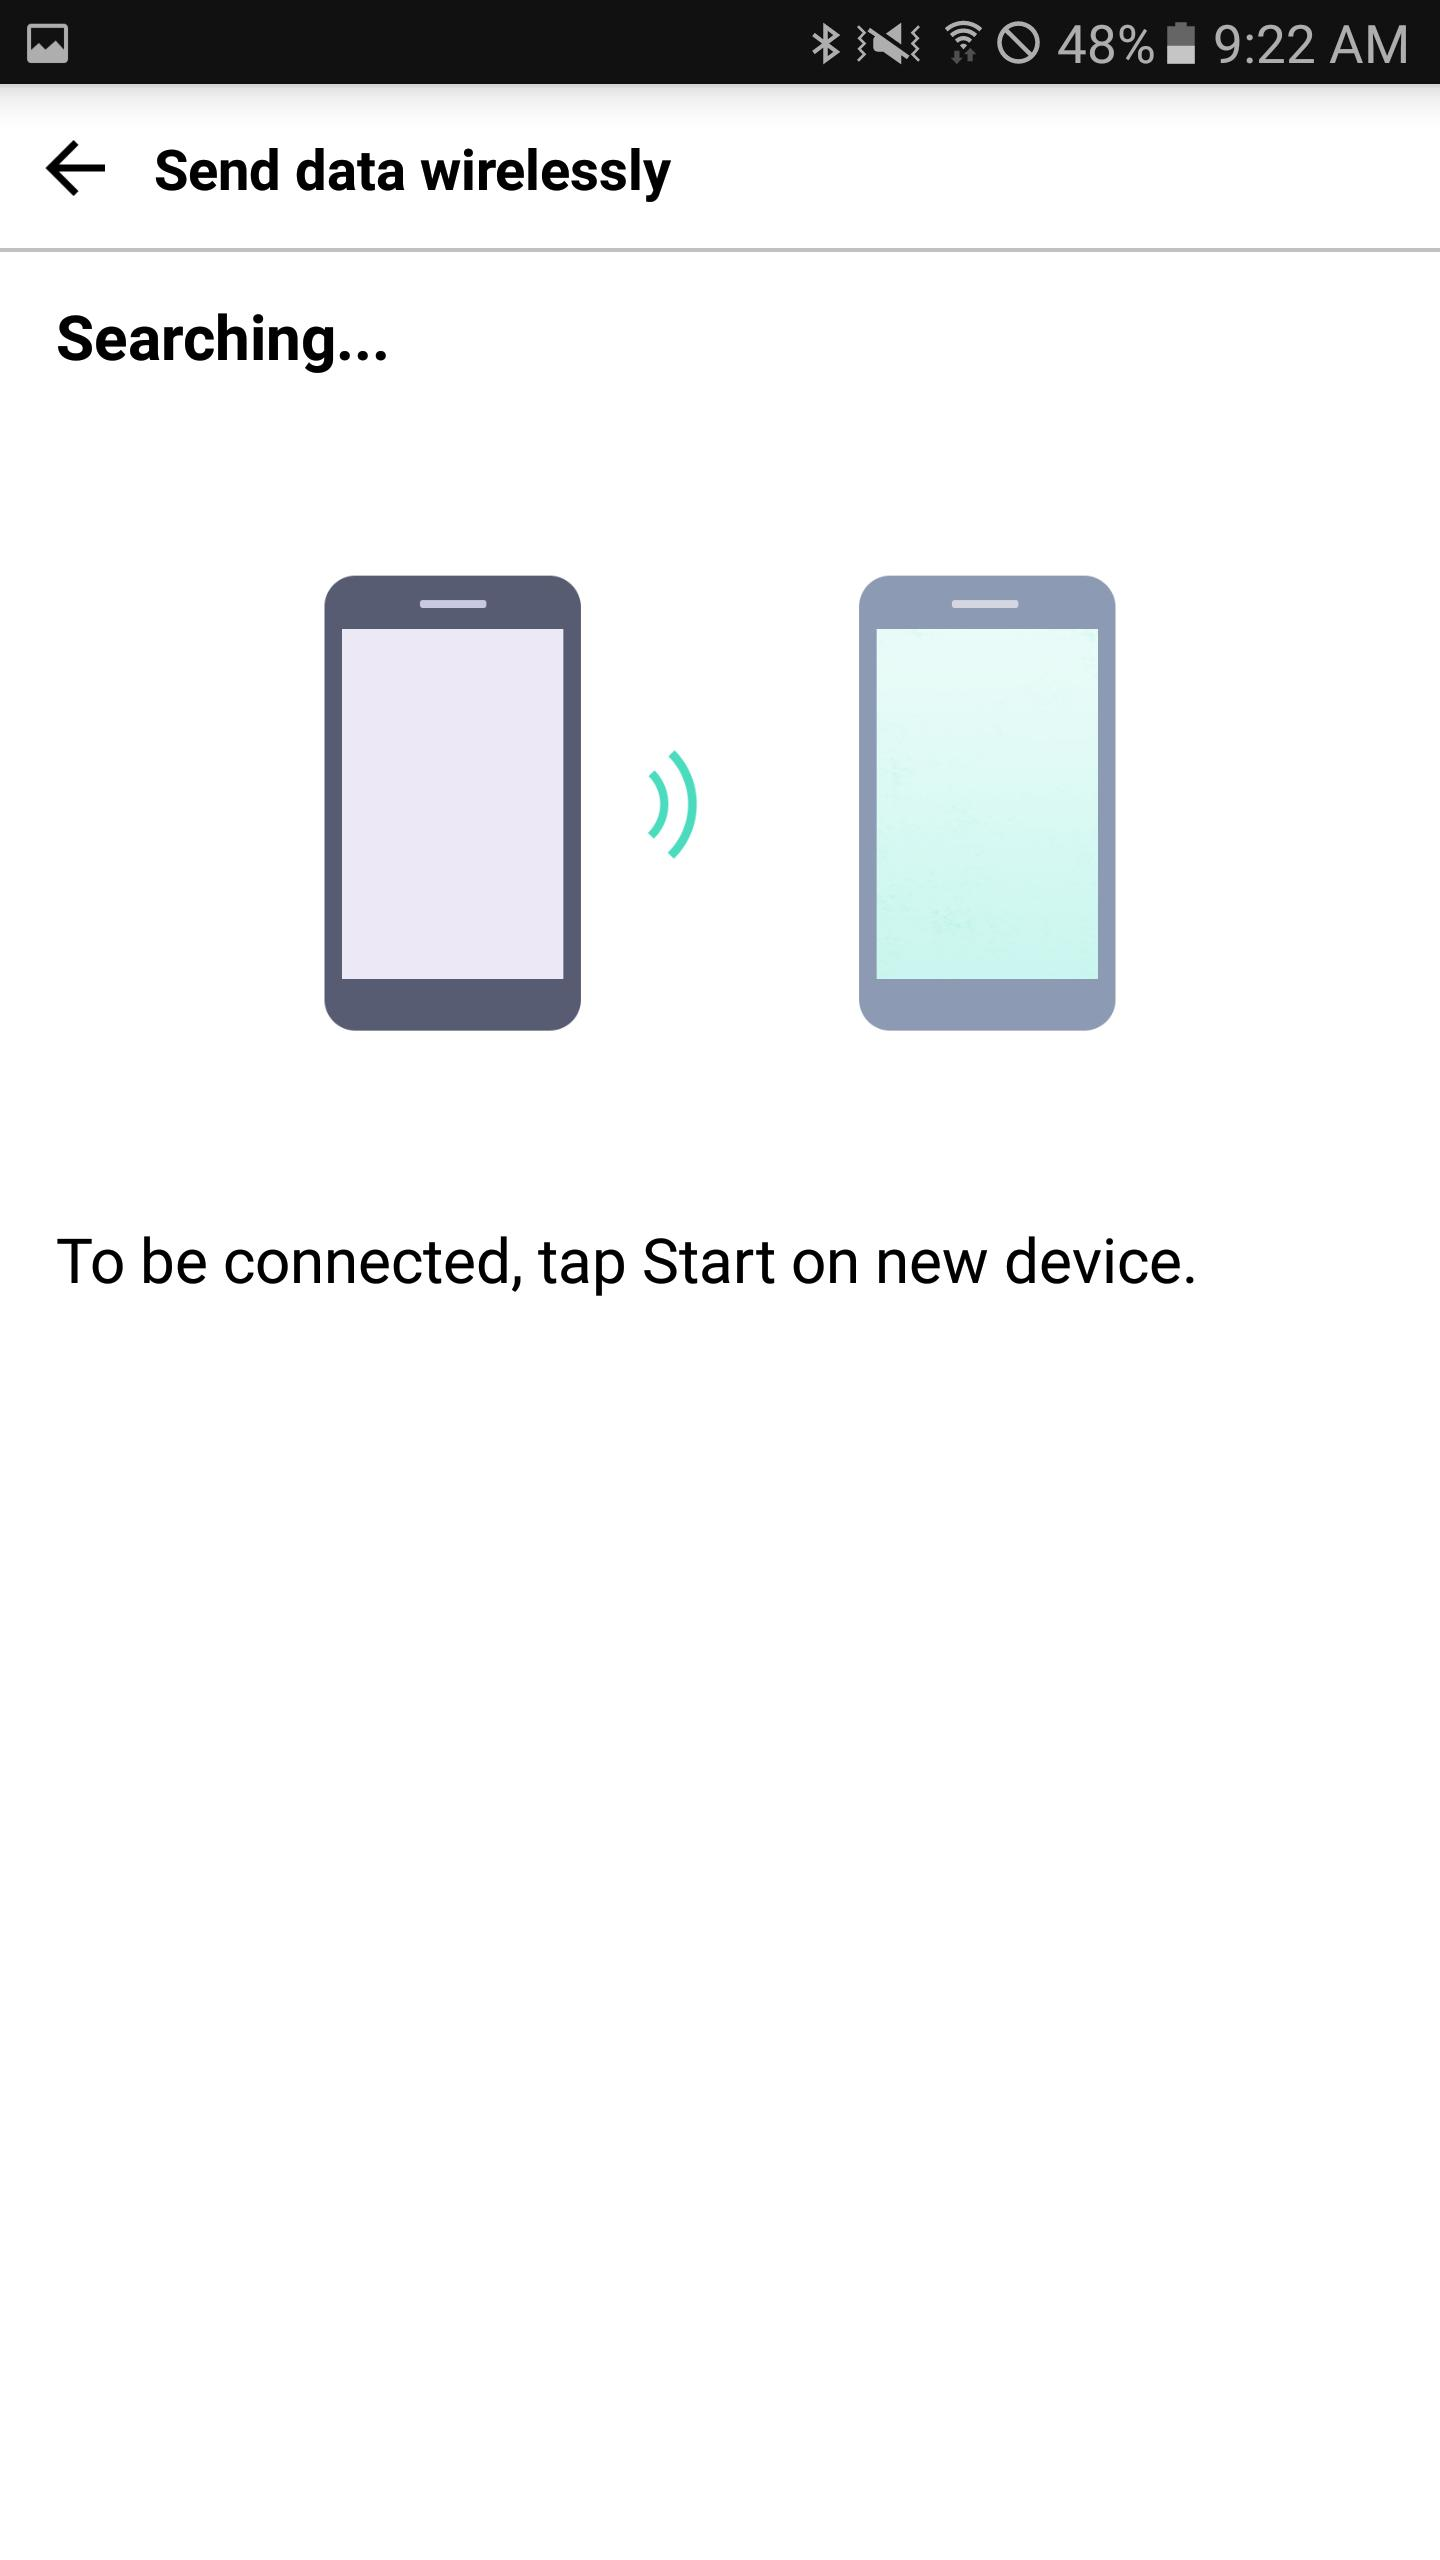 LG Mobile Switch (Sender) for Android - APK Download